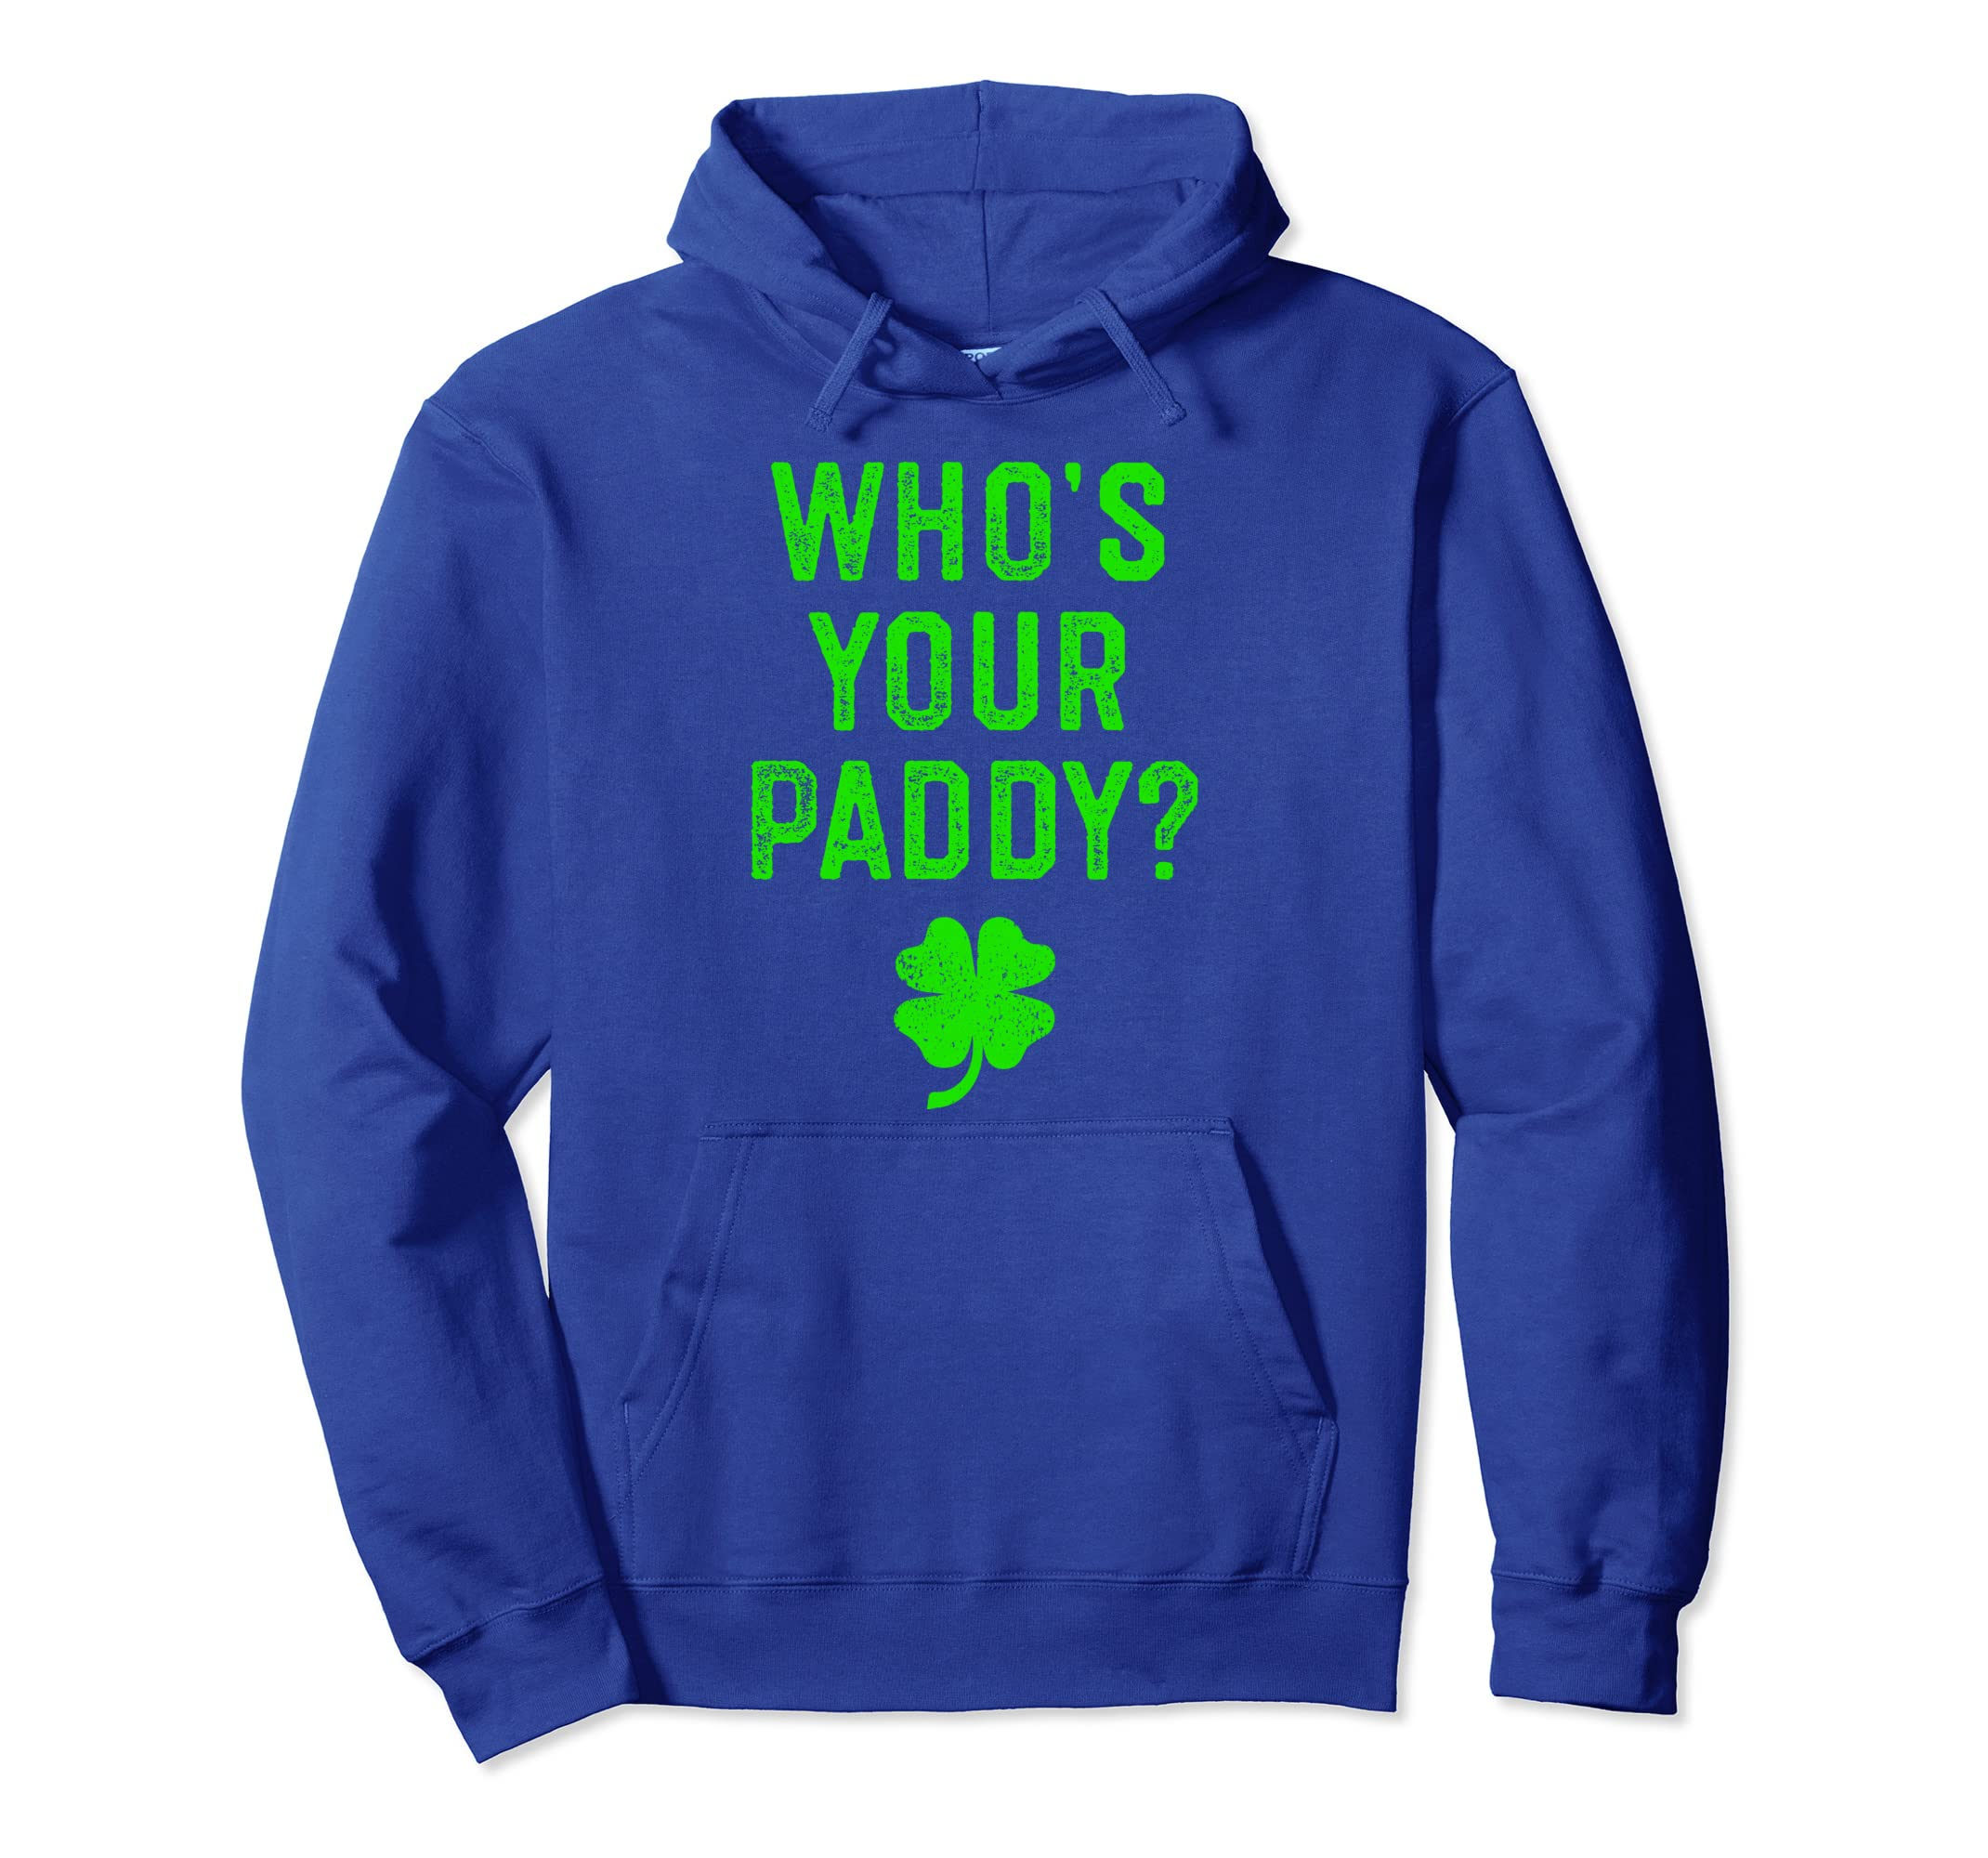 f10b37c15 Amazon.com: Who's Your Paddy St Patricks Day Hoodie Funny Puns Gifts:  Clothing